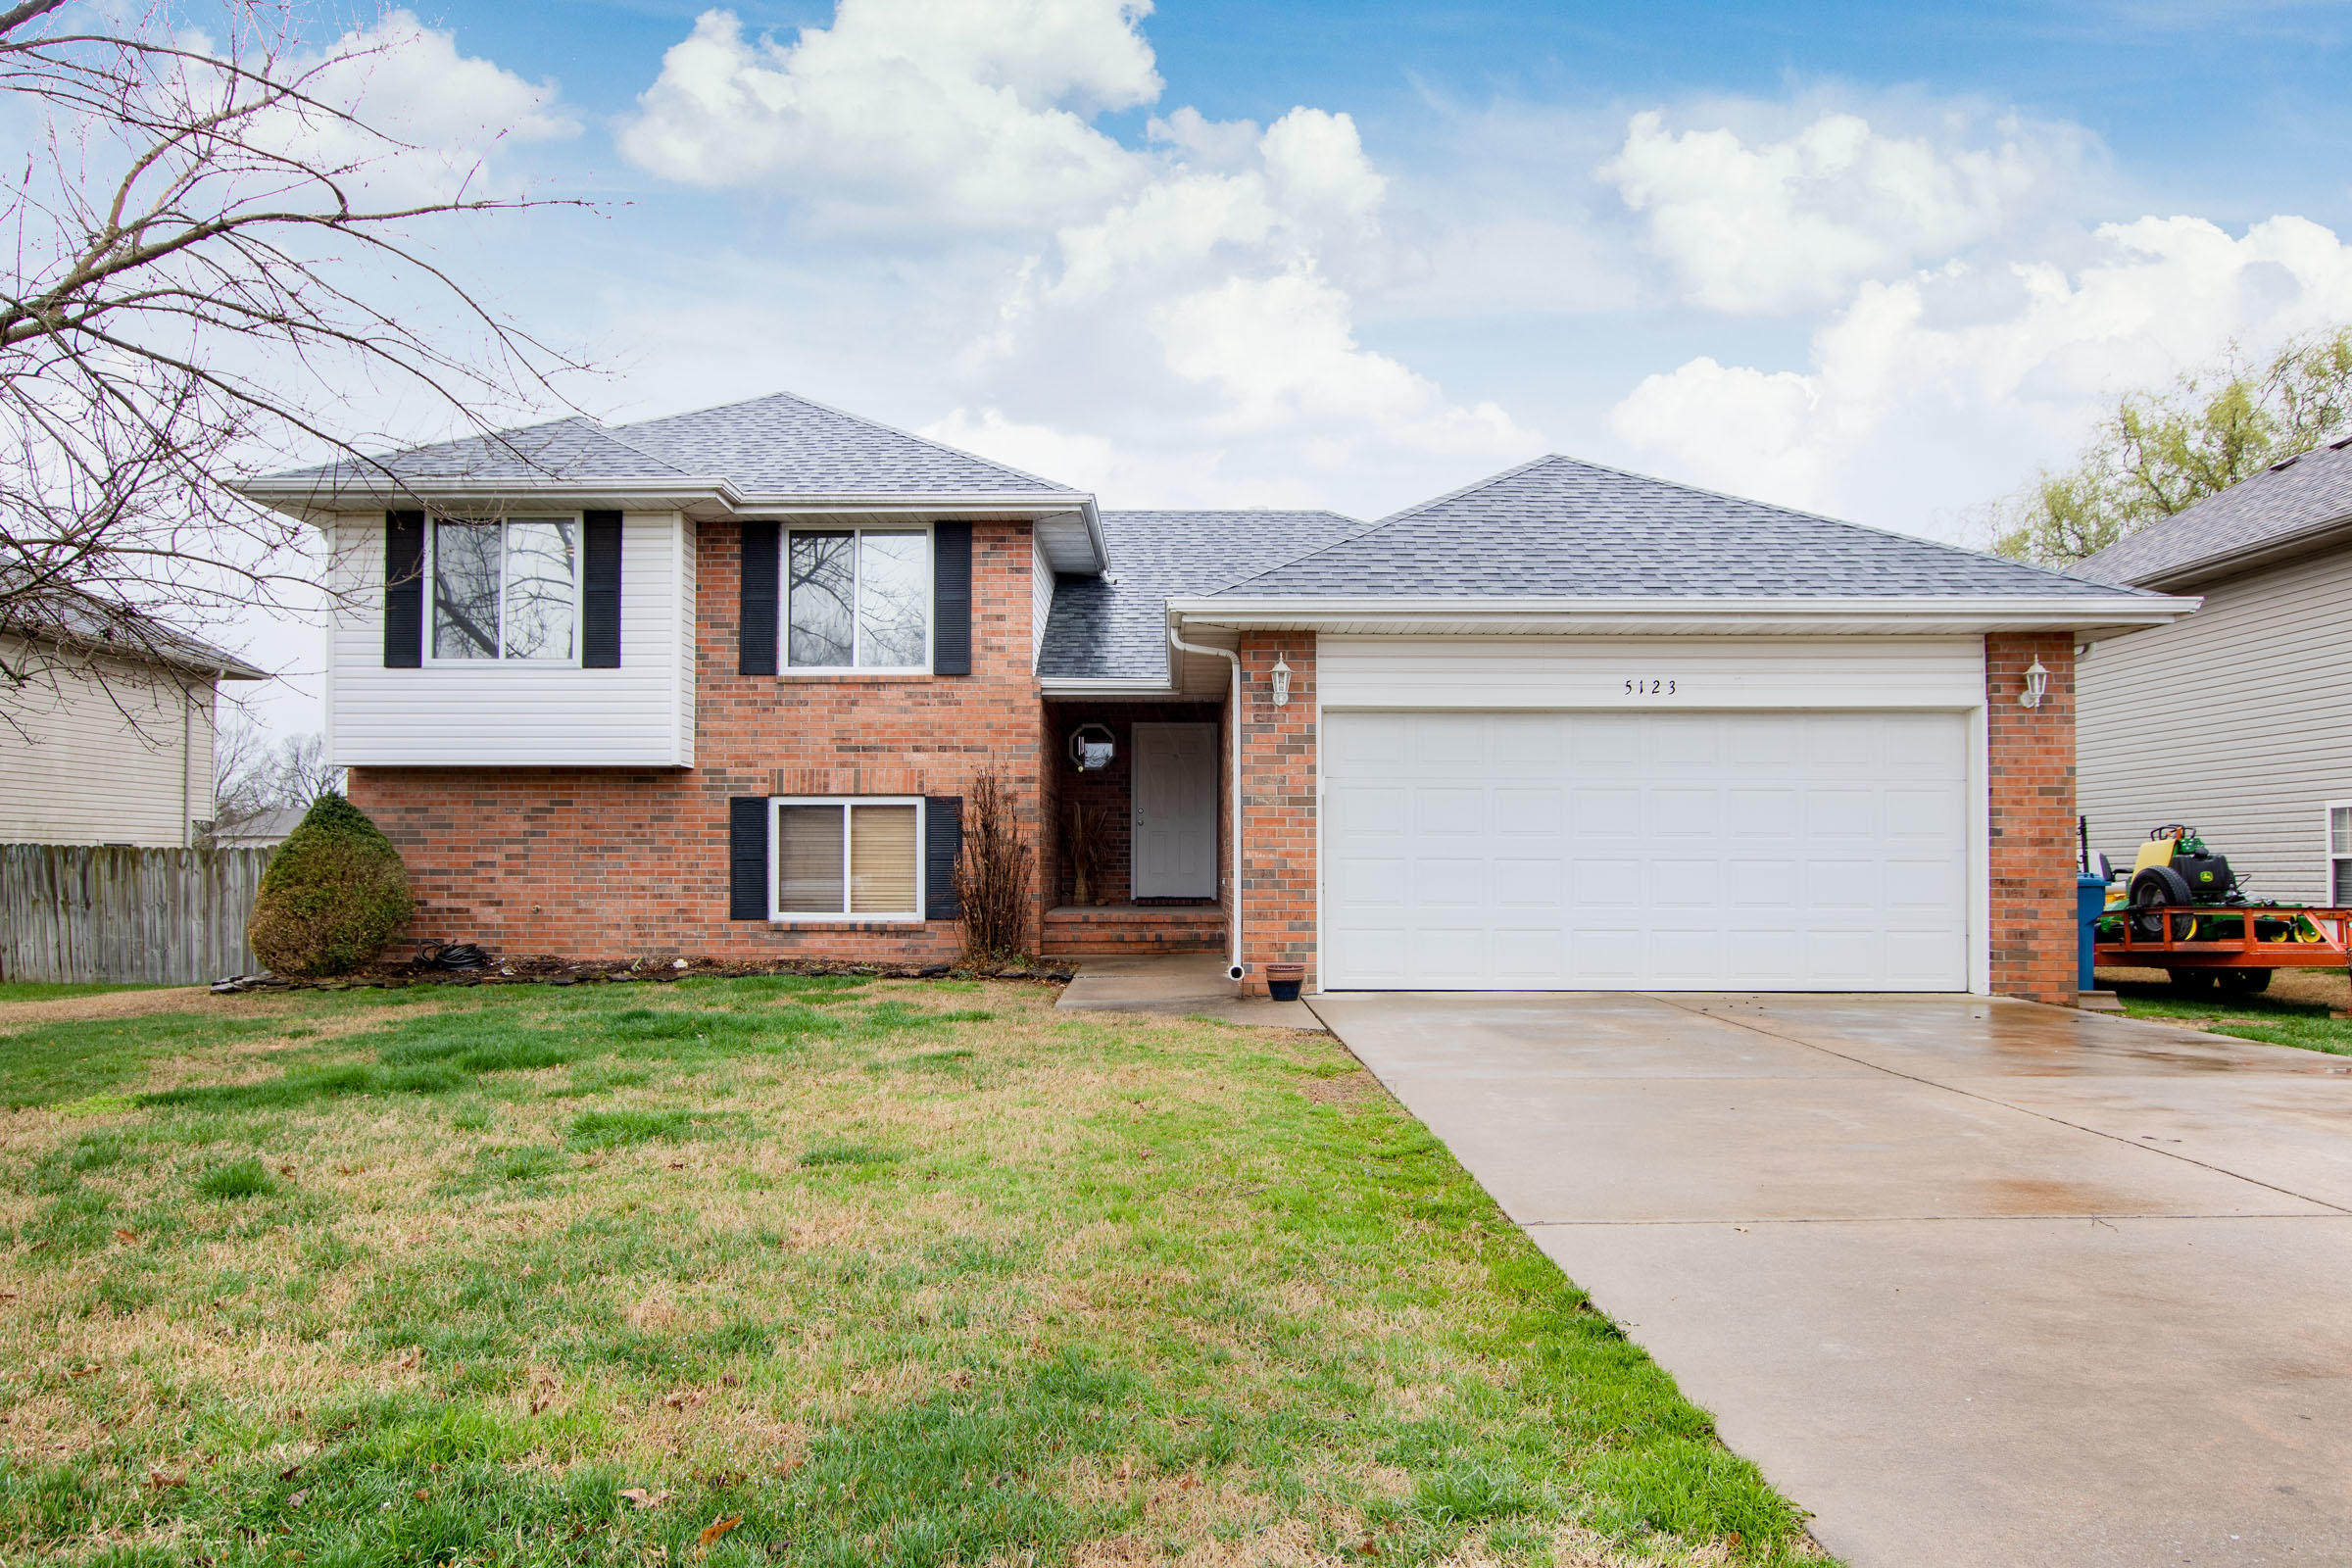 5123 South Red Oak Battlefield, MO 65619